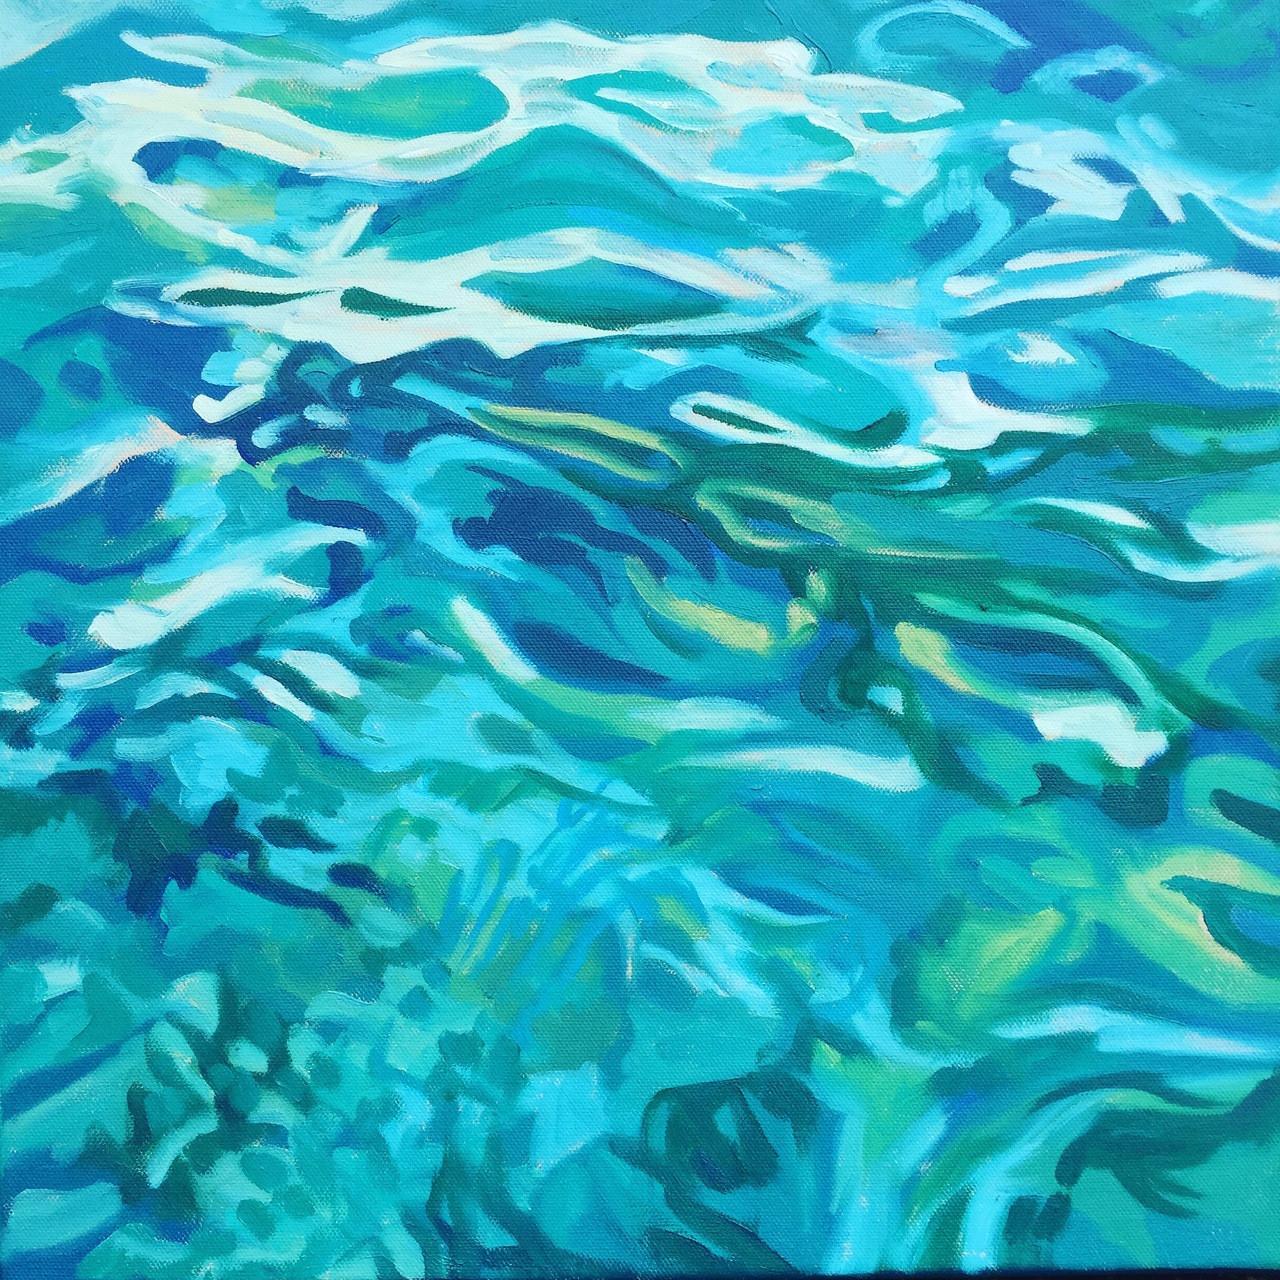 Water and Sky 7 from Series of Water surface paintings